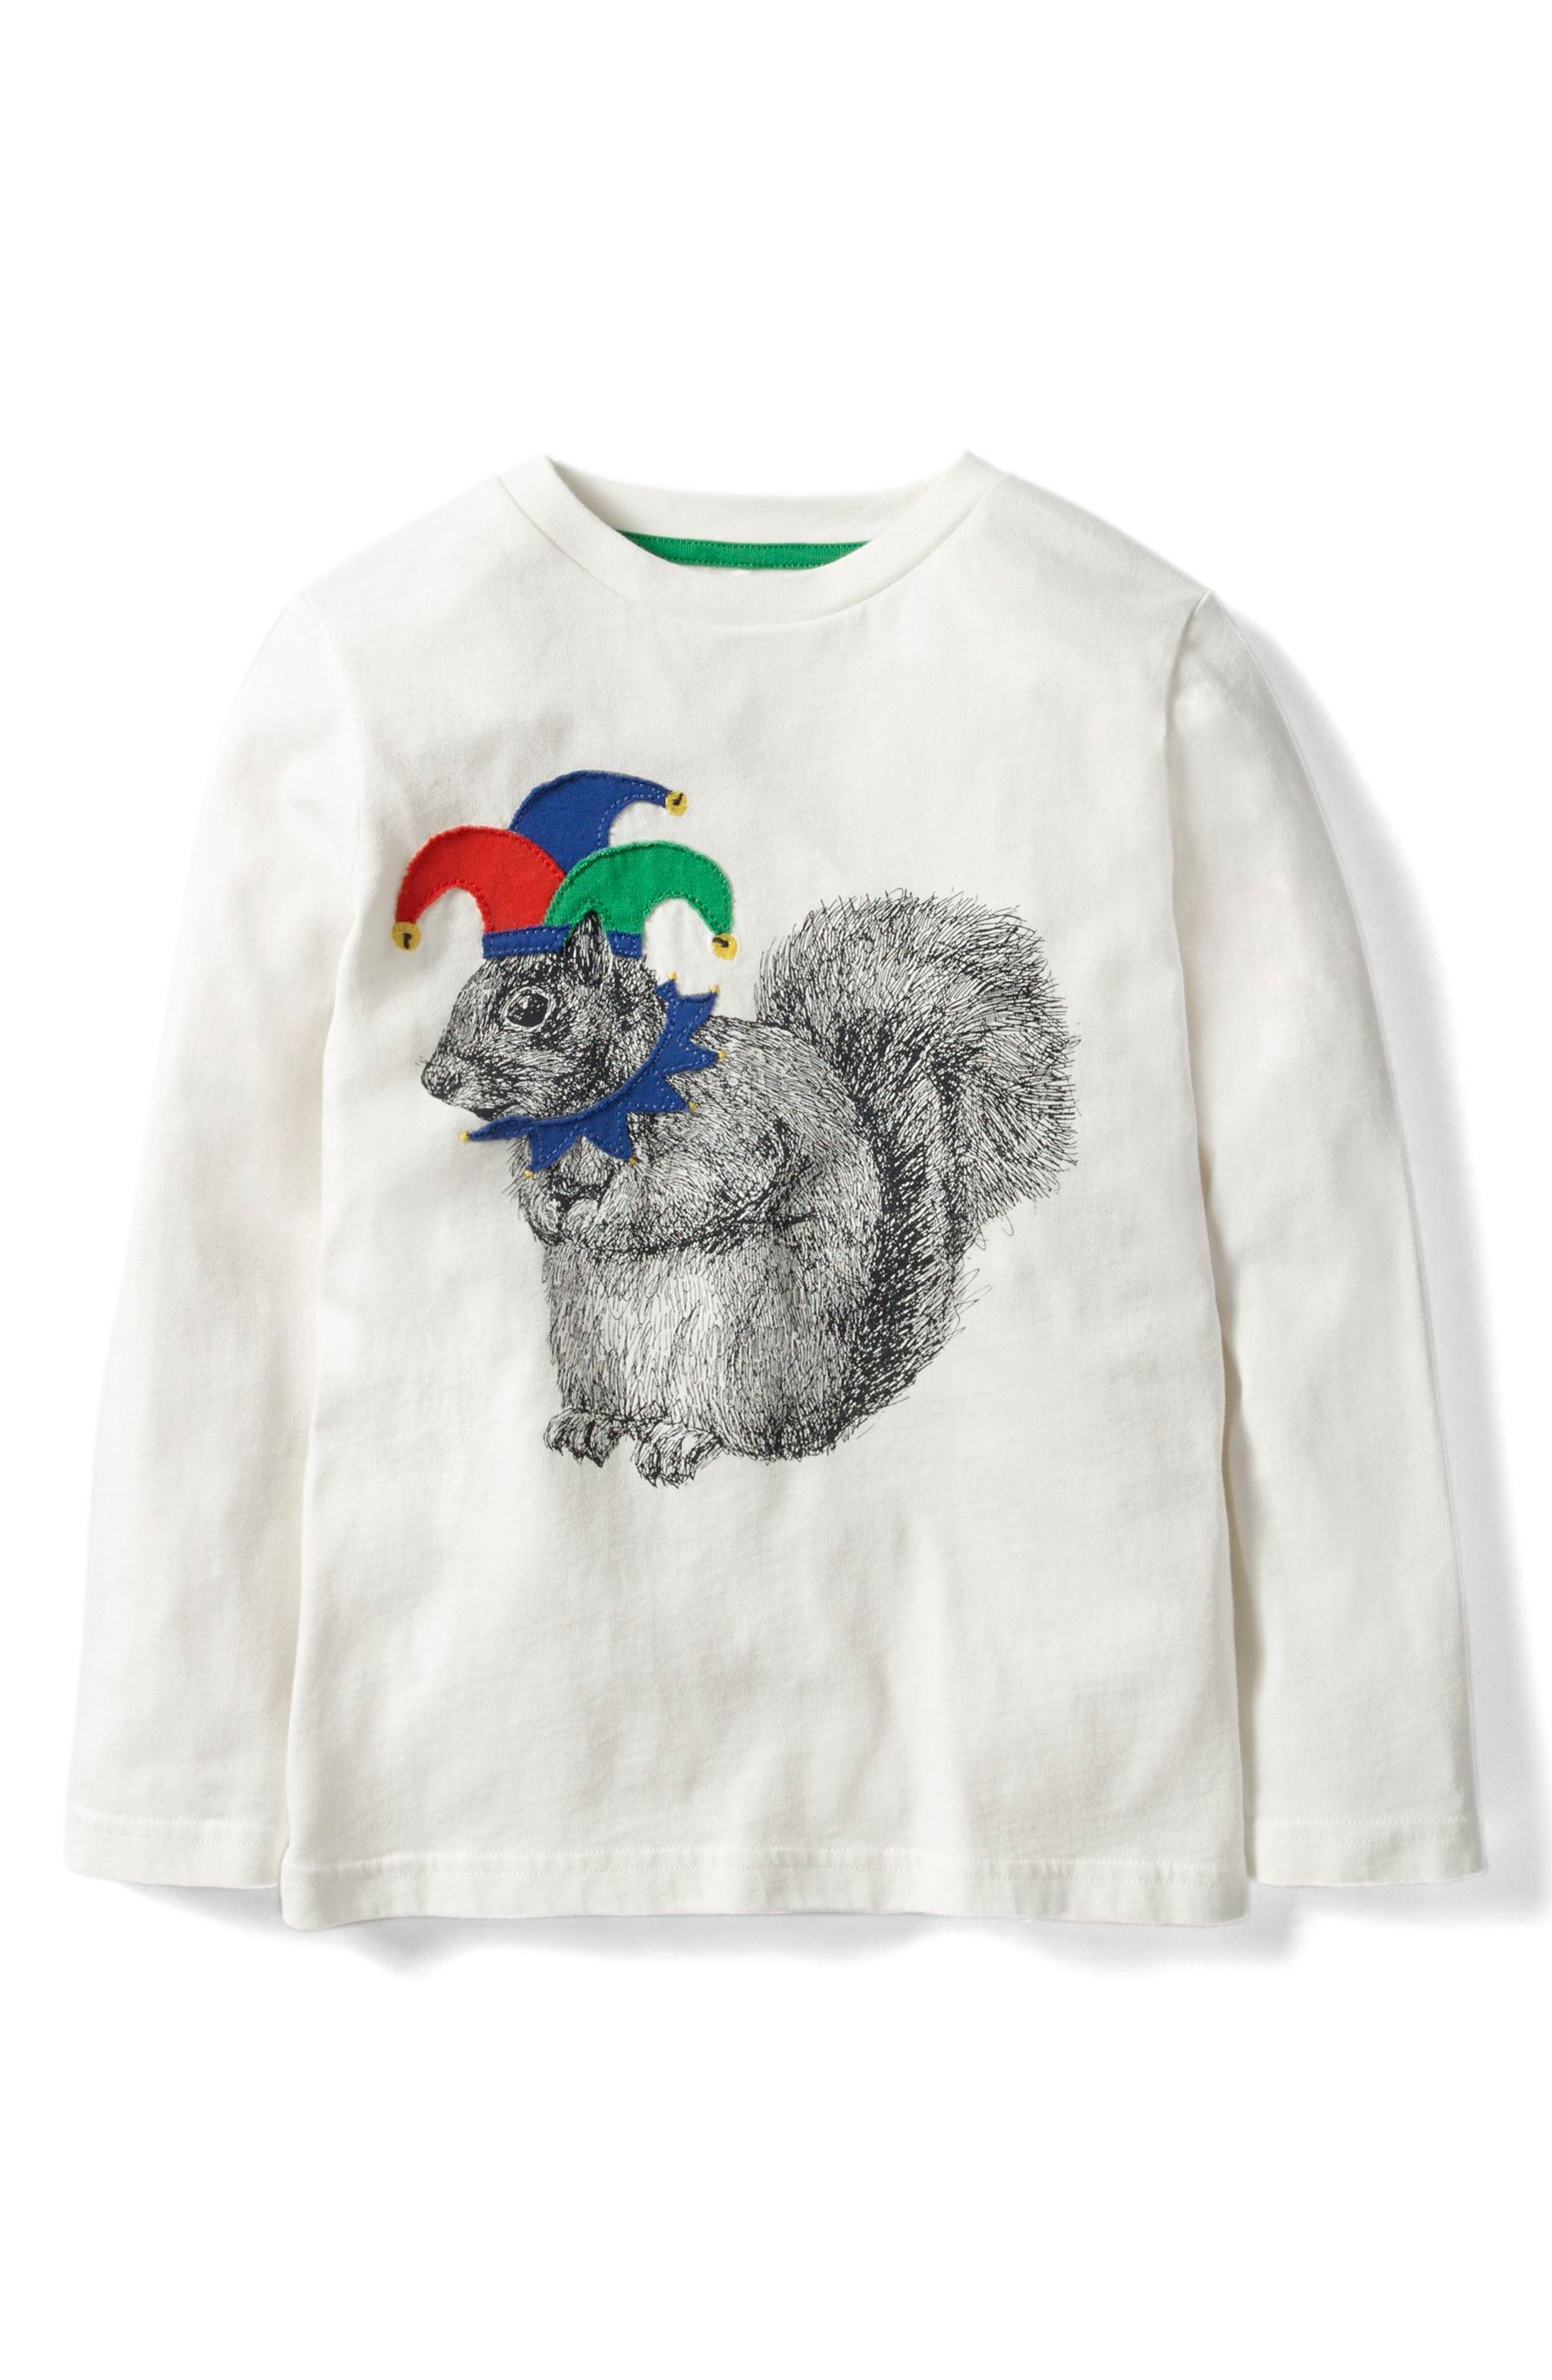 Animals Rule Long Sleeve T-Shirt,                             Main thumbnail 1, color,                             Ecru Squirrel Jester